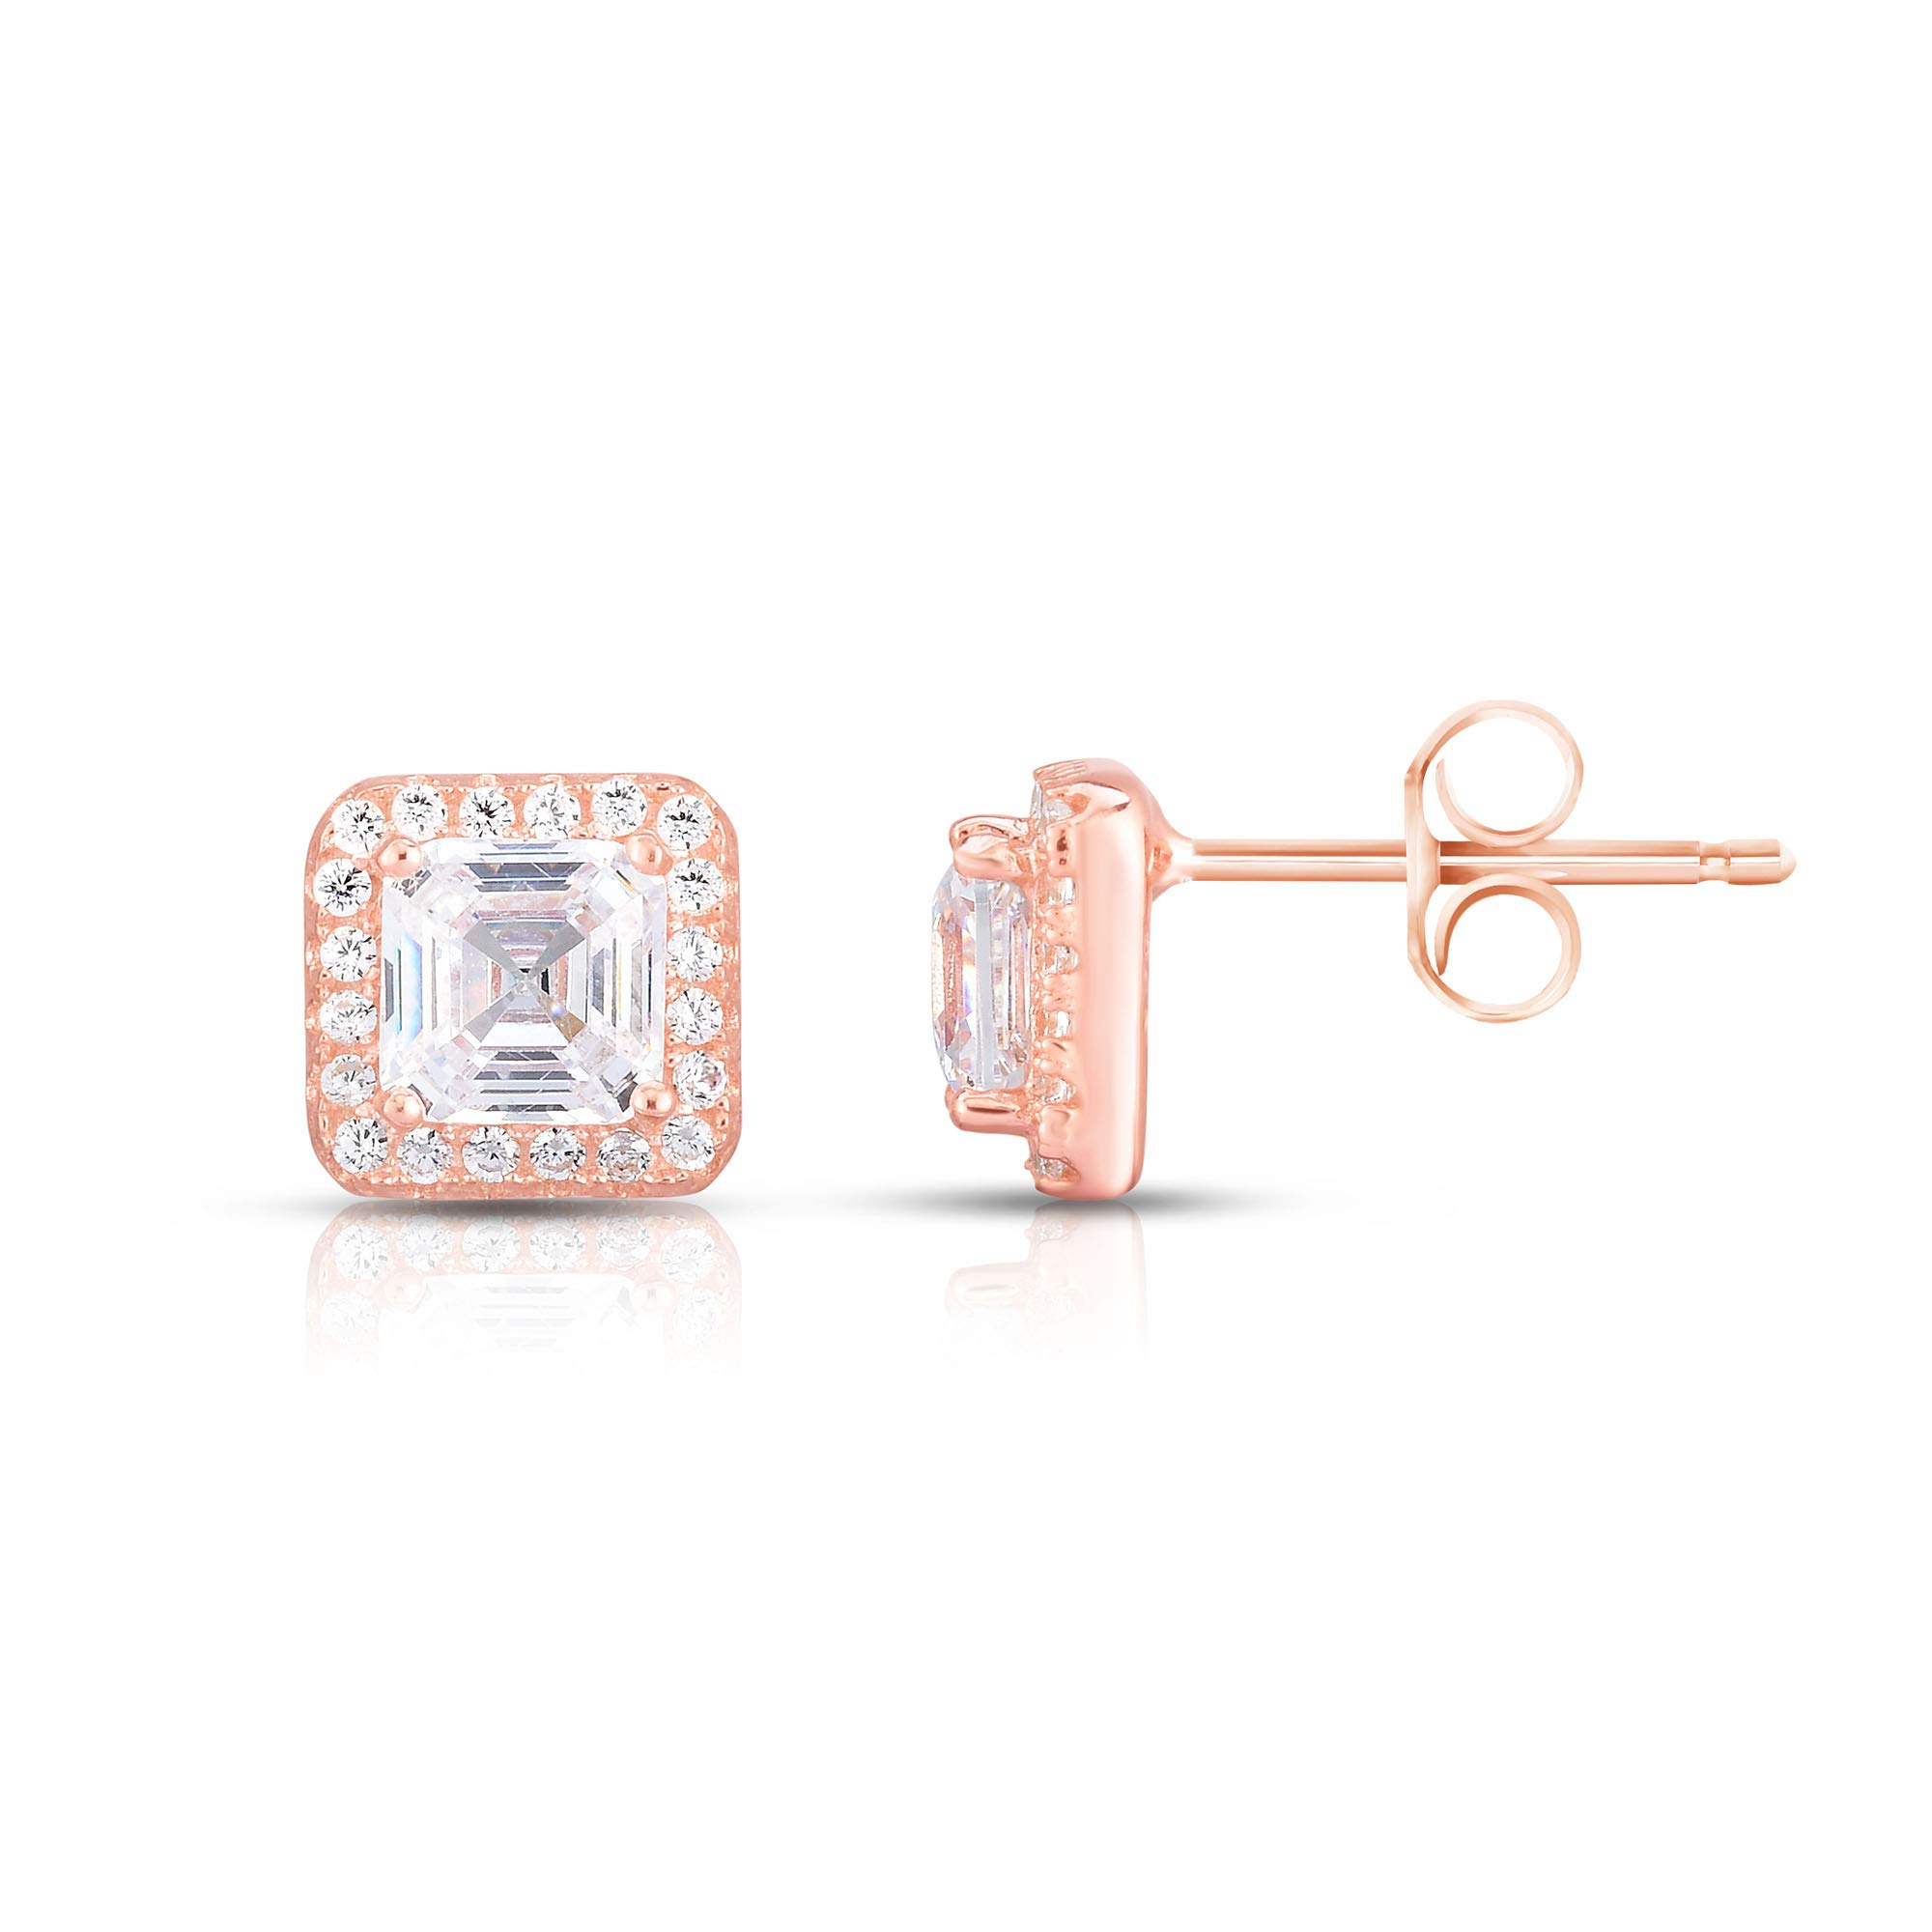 Spoil Cupid Rose Gold-Plated Sterling Silver Asscher Cut Cubic Zirconia Halo Stud Earrings